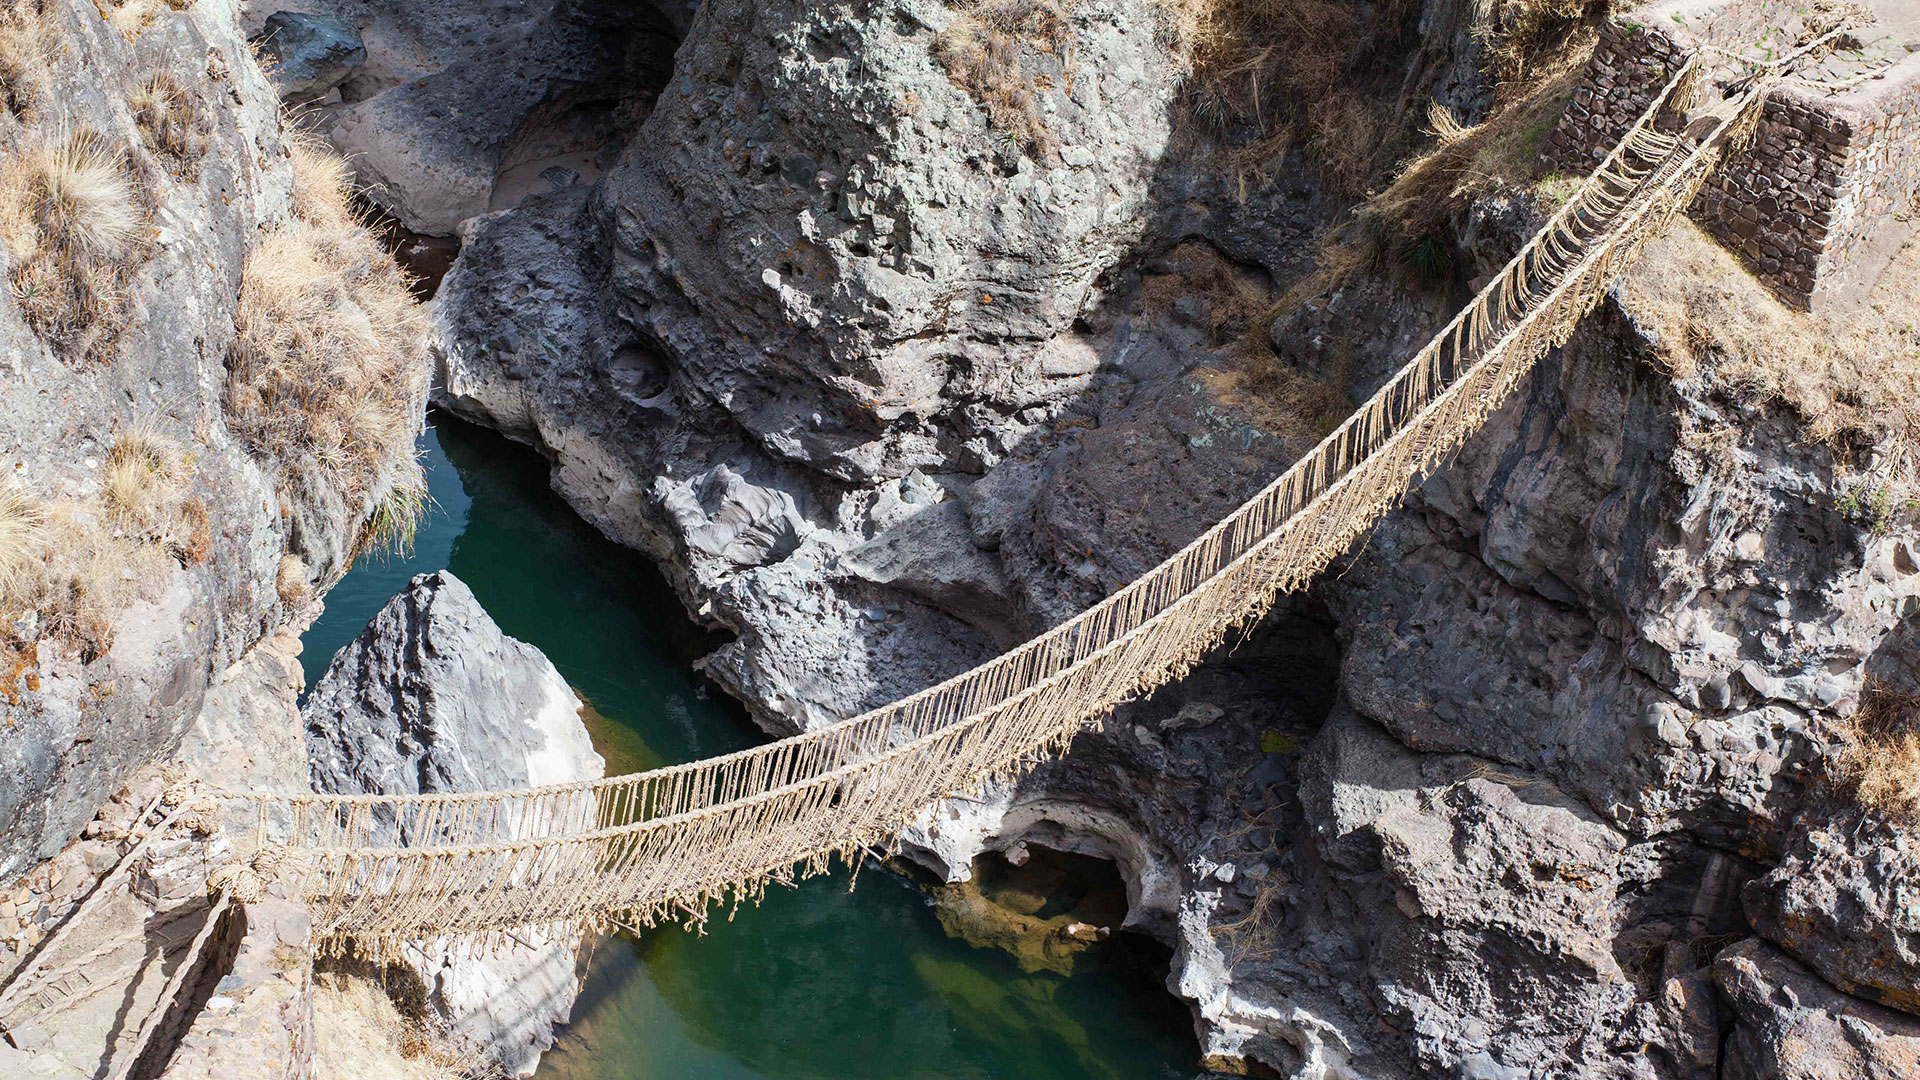 An overhead view of the Q'eswachaka Bridge in Peru.